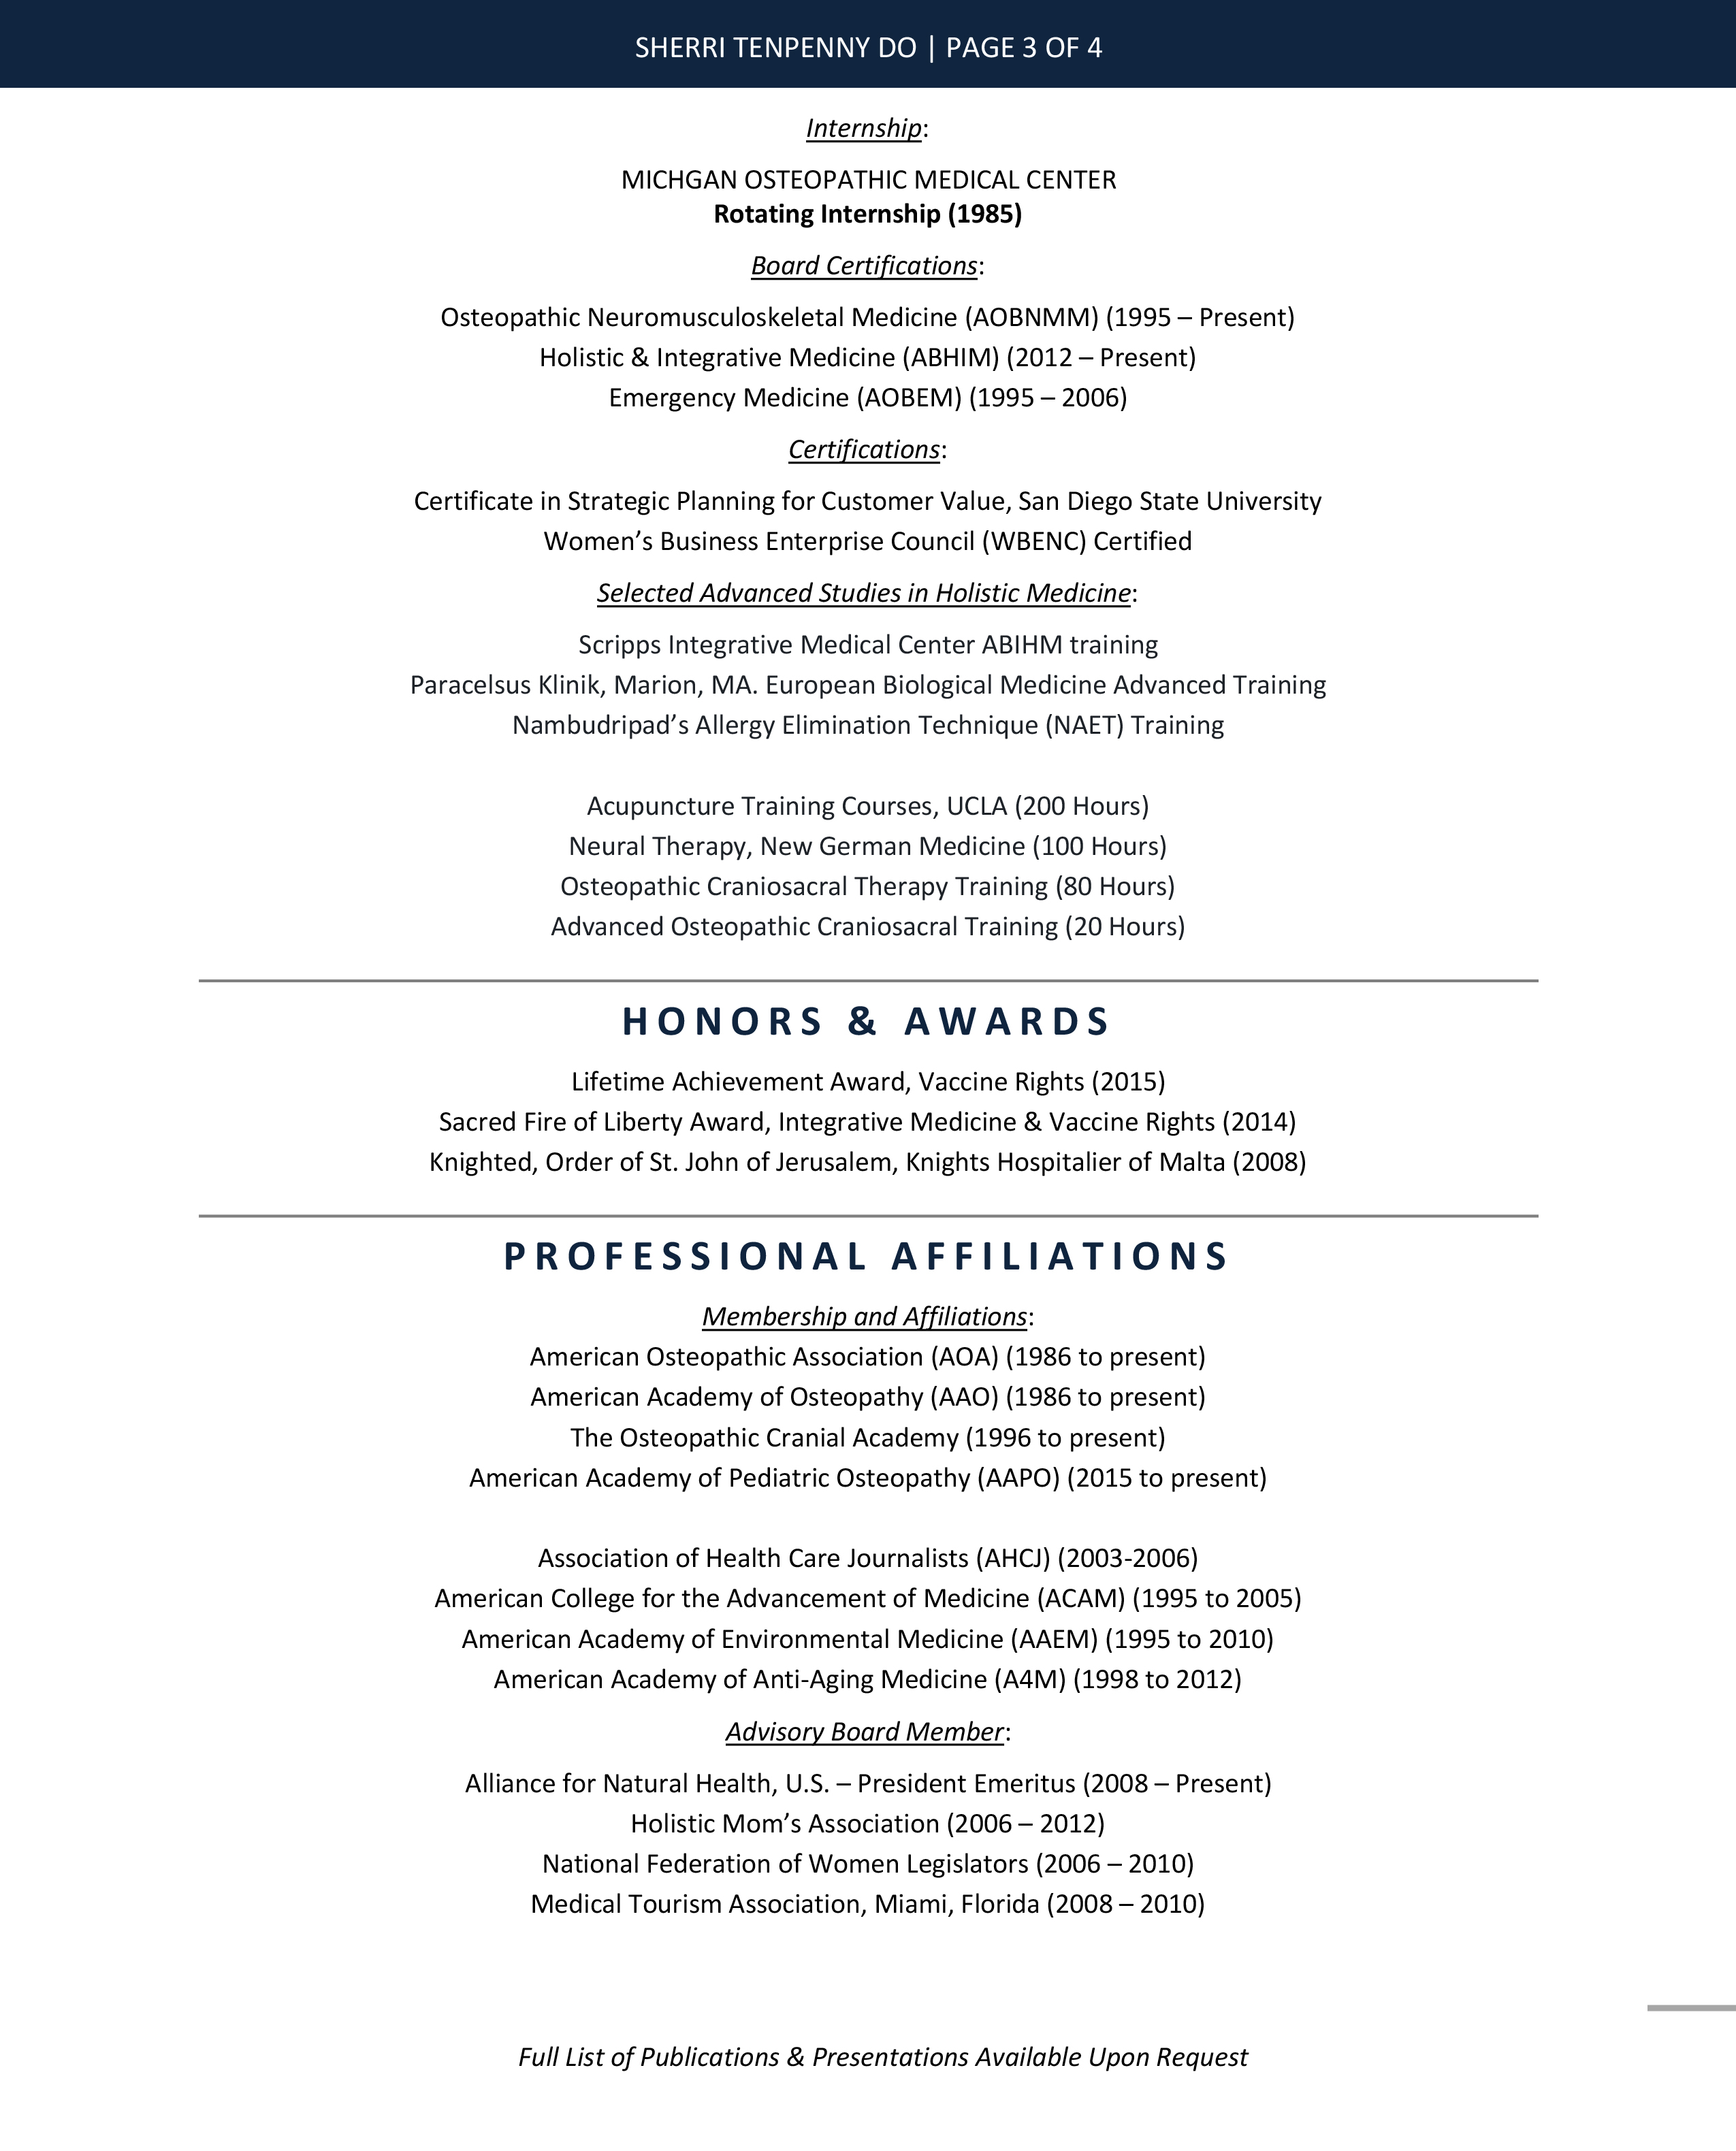 Tenpenny-Resume-4pgs for photoshop-3.jpg